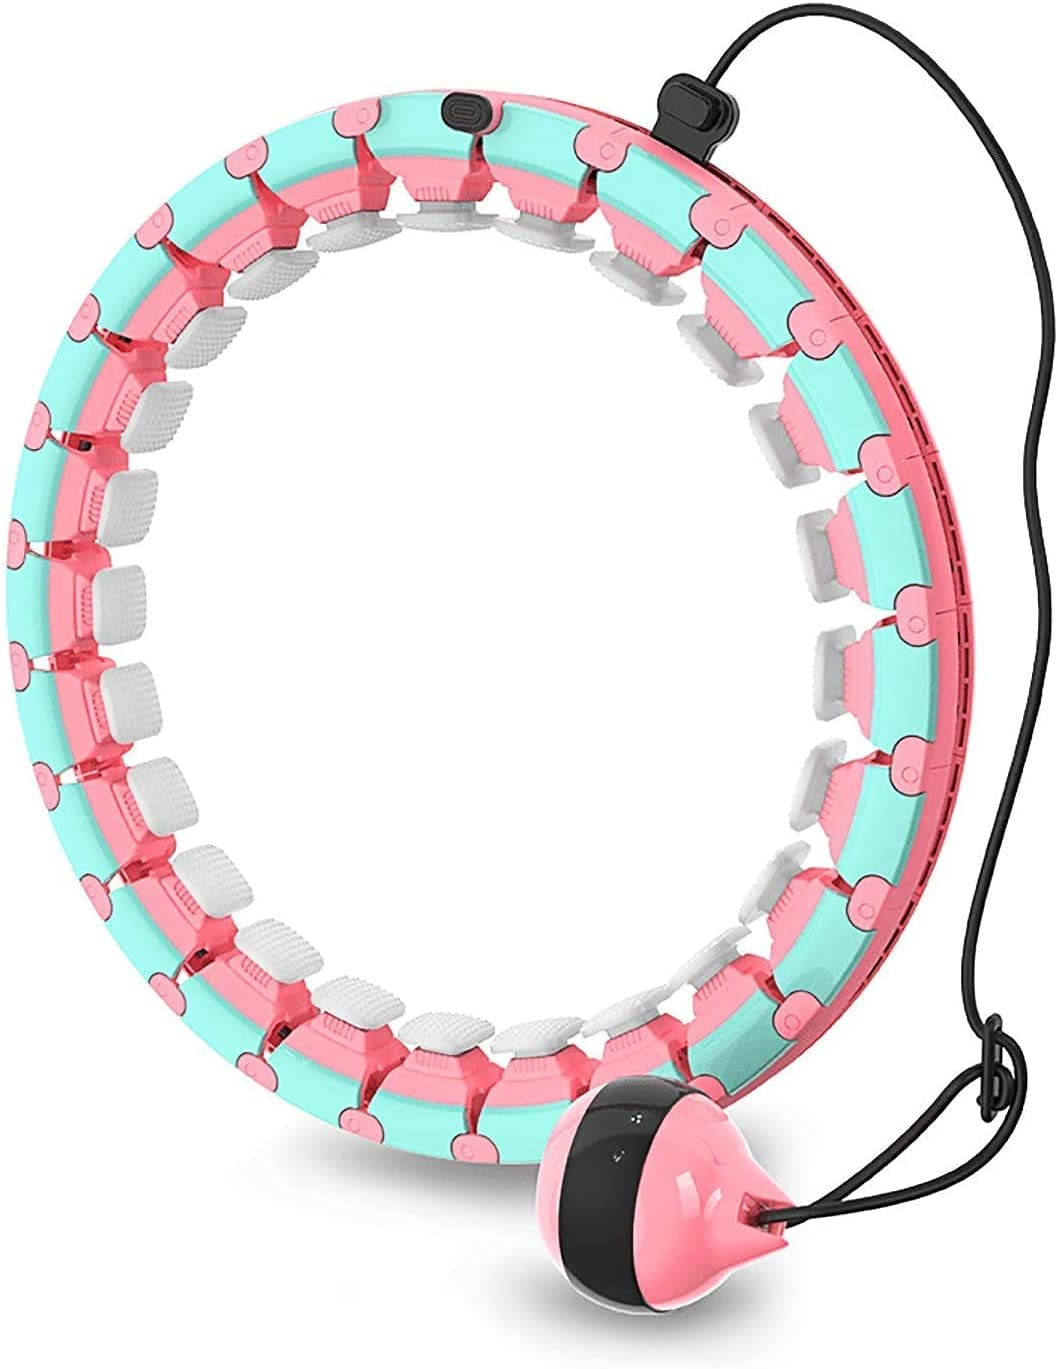 PriceXes Smart Weighted Hula unisex Hoops Detac Massage 24 Ranking TOP20